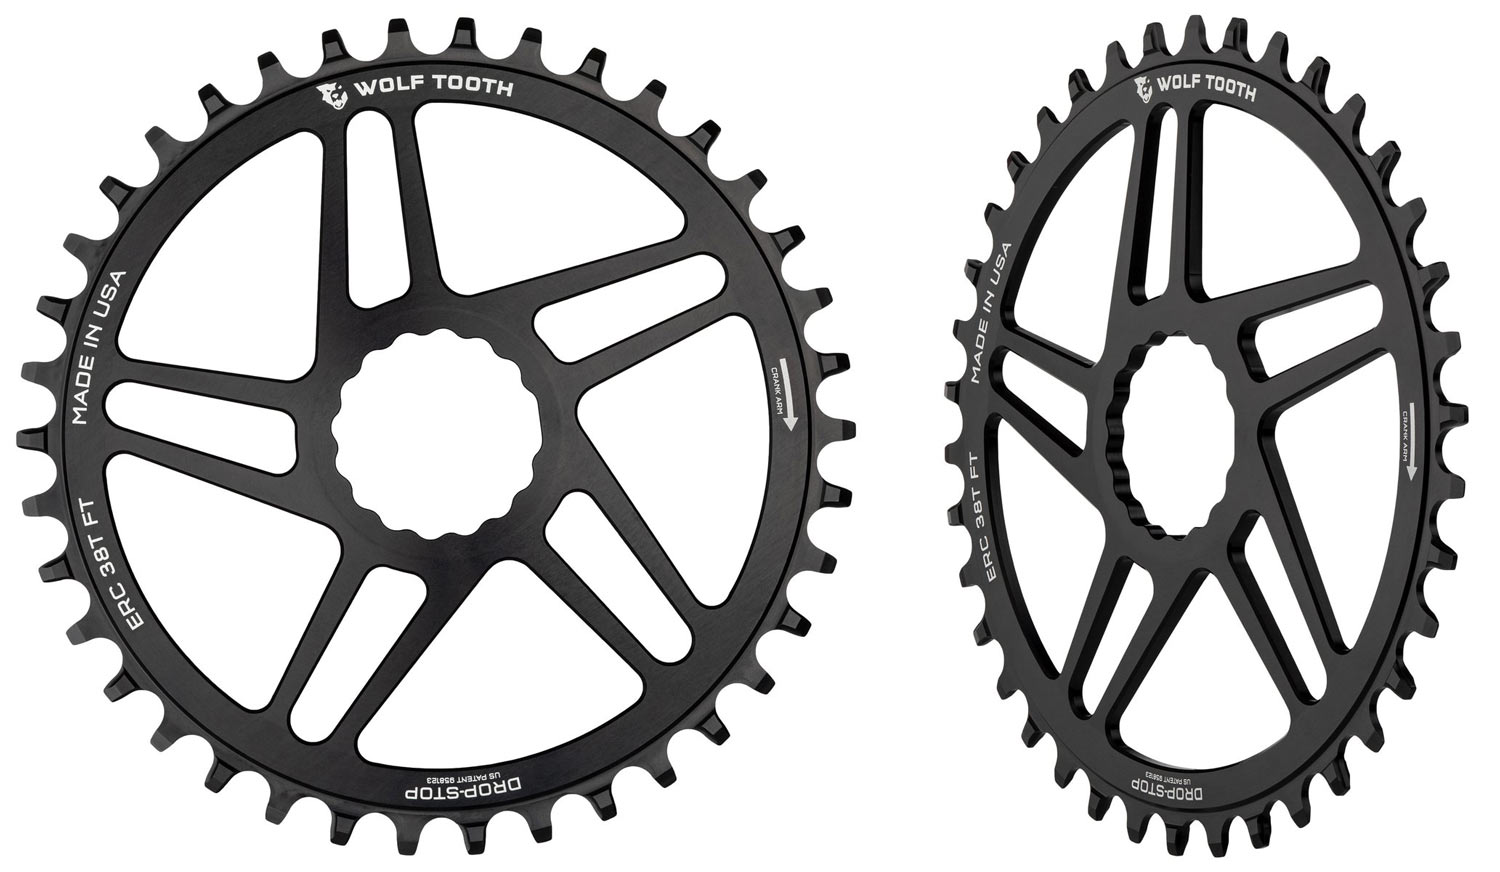 can I use sram 12 speed road bike chains on easton cinch cranksets